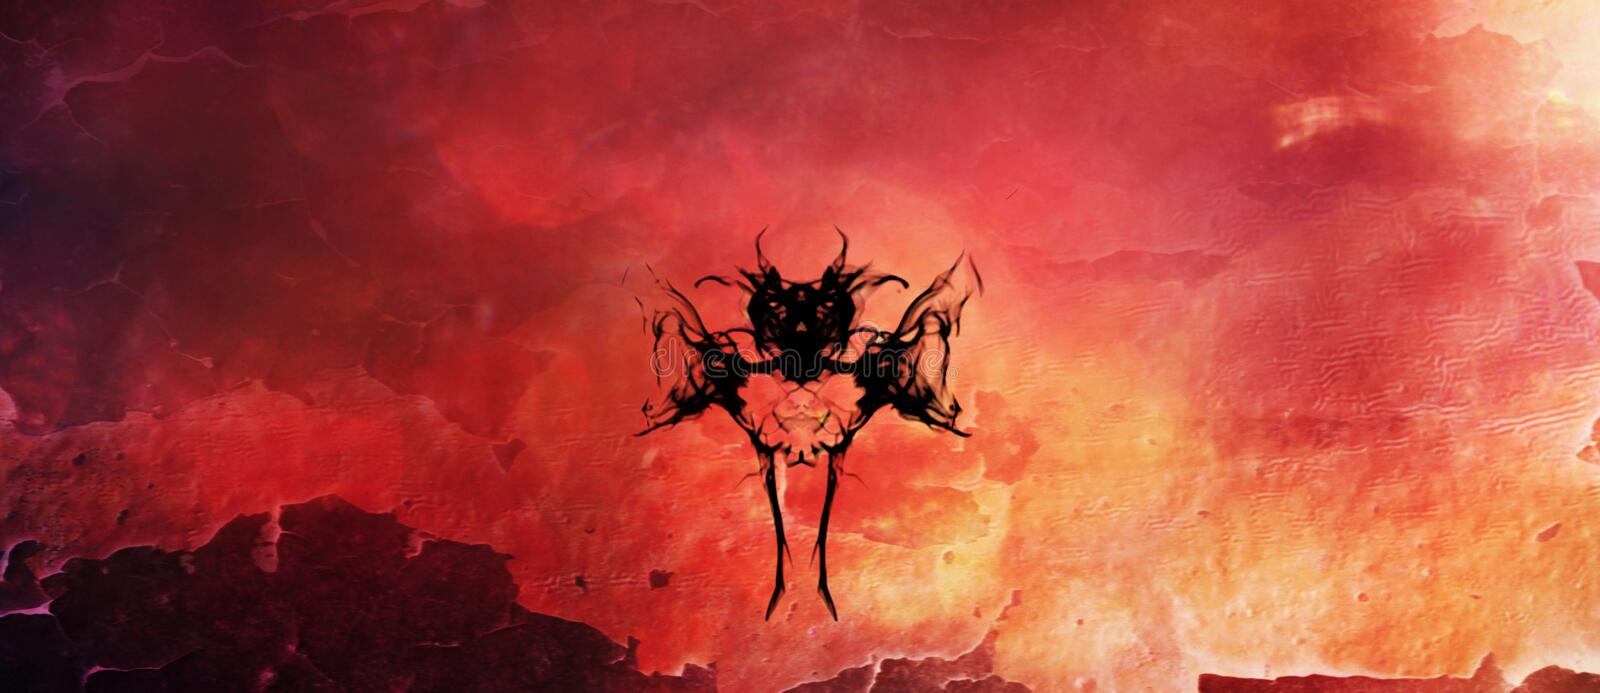 Bat Like Creature Silhouetted against Flames. A digital vector pattern of a bat or demon like creature silhouetted against an inferno vector illustration